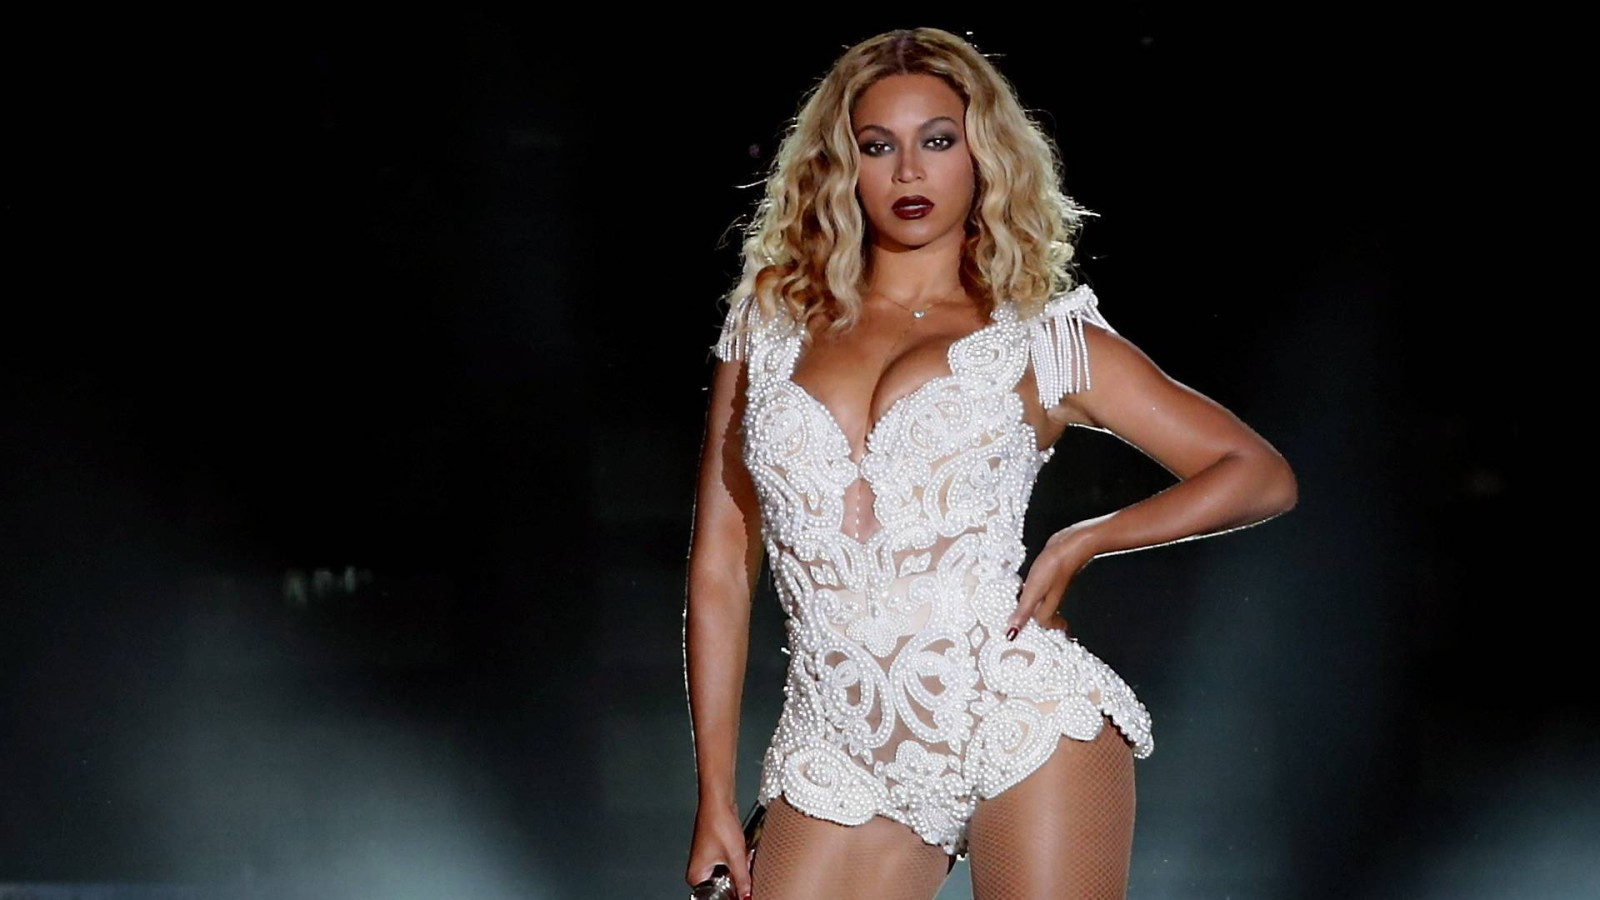 Things you didn't know about Beyonce